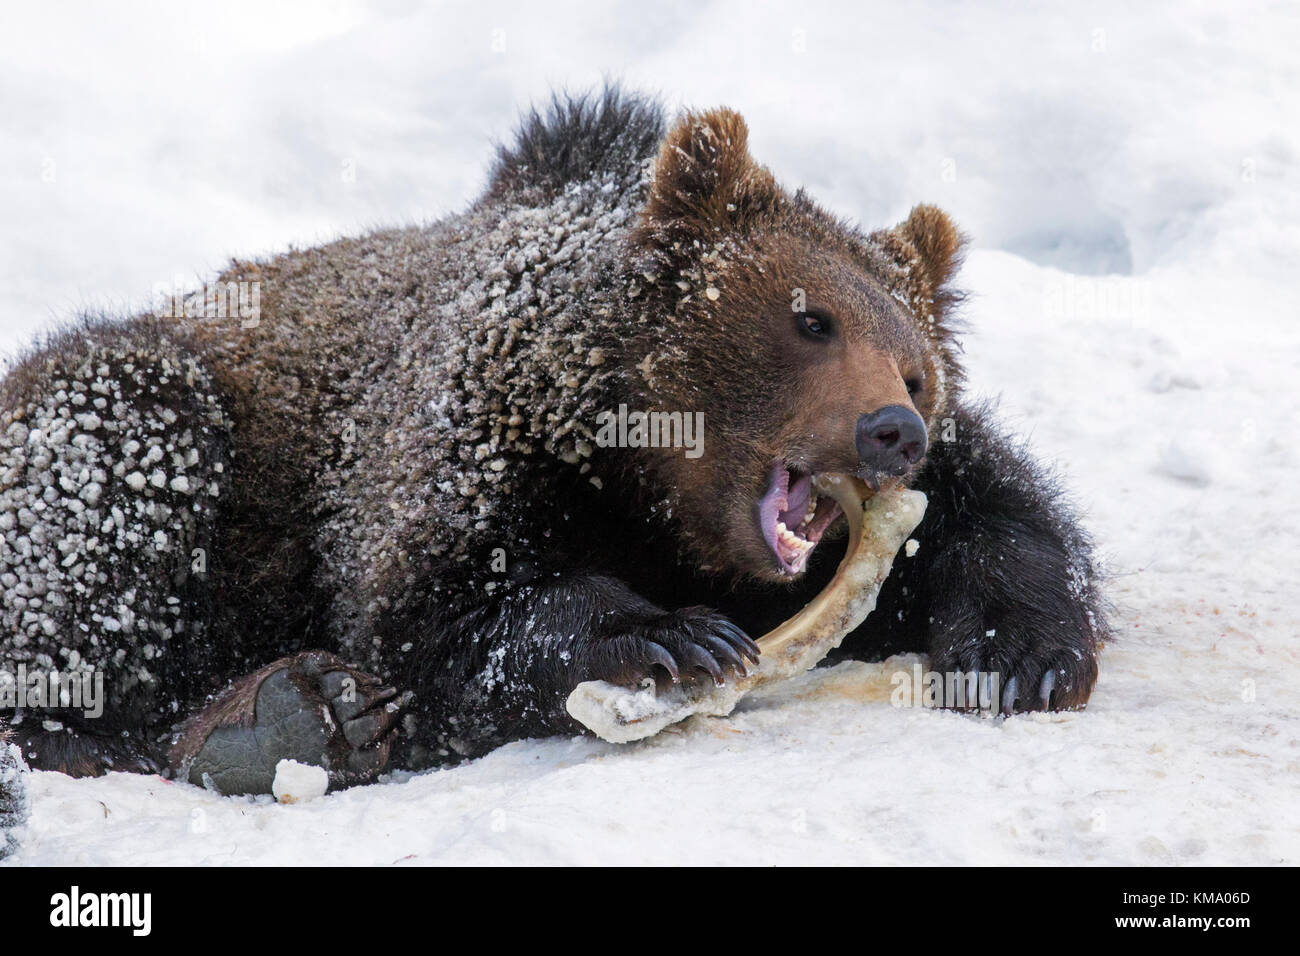 One year old brown bear cub (Ursus arctos arctos) gnawing on knuckle bone in the snow in winter - Stock Image